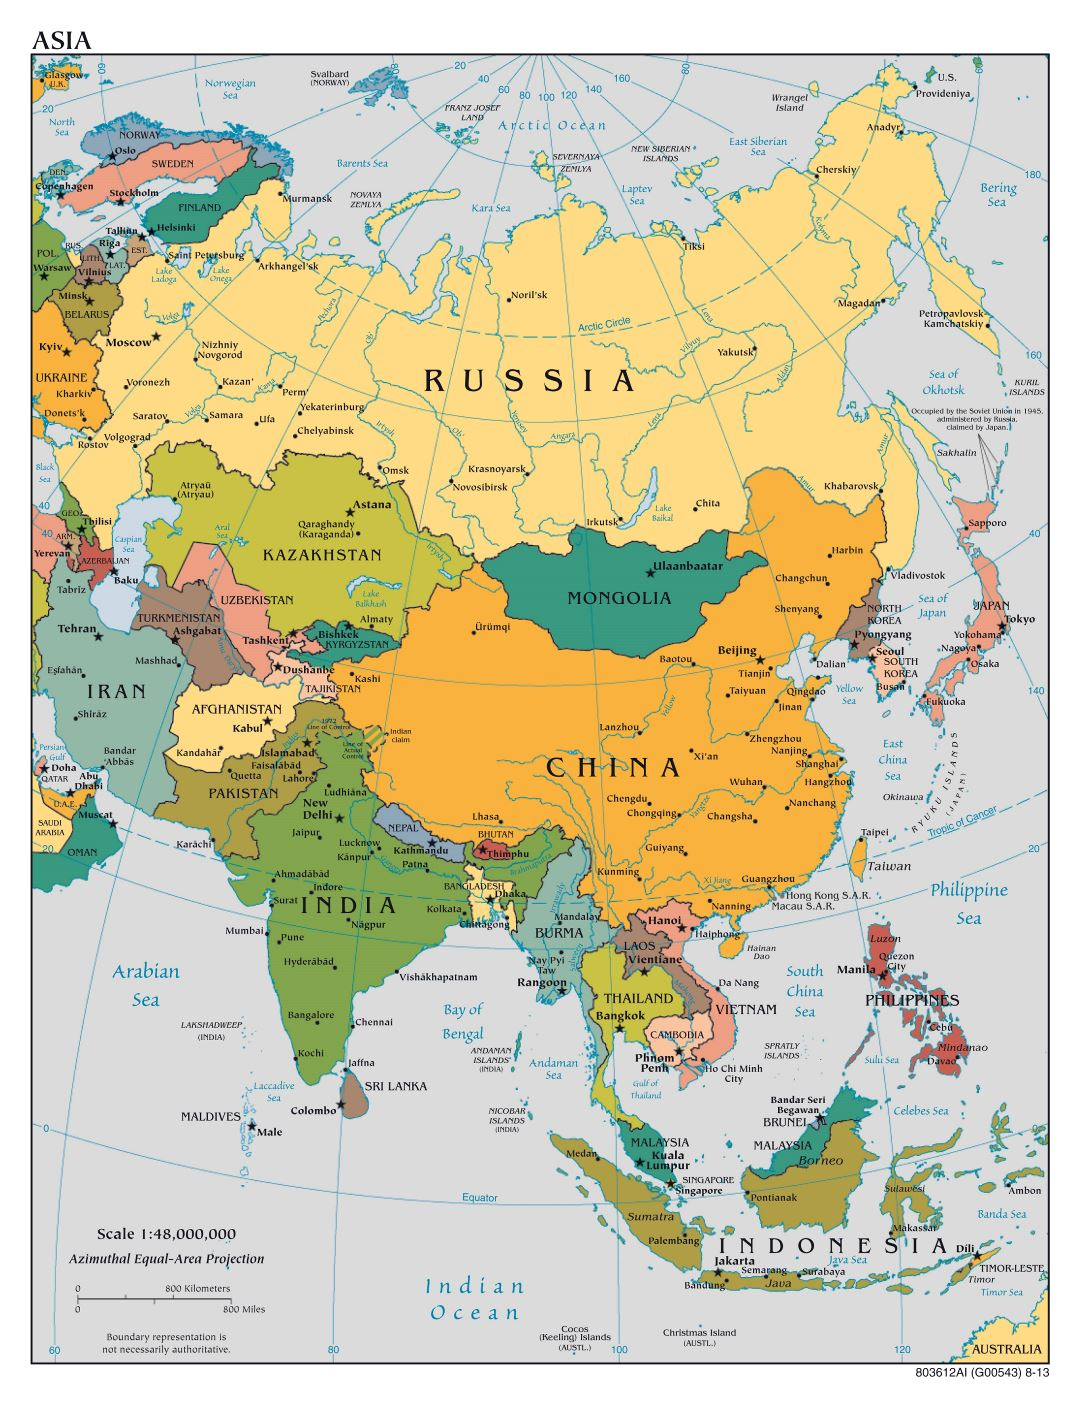 Large scale political map of Asia with major cities and capitals - 2013